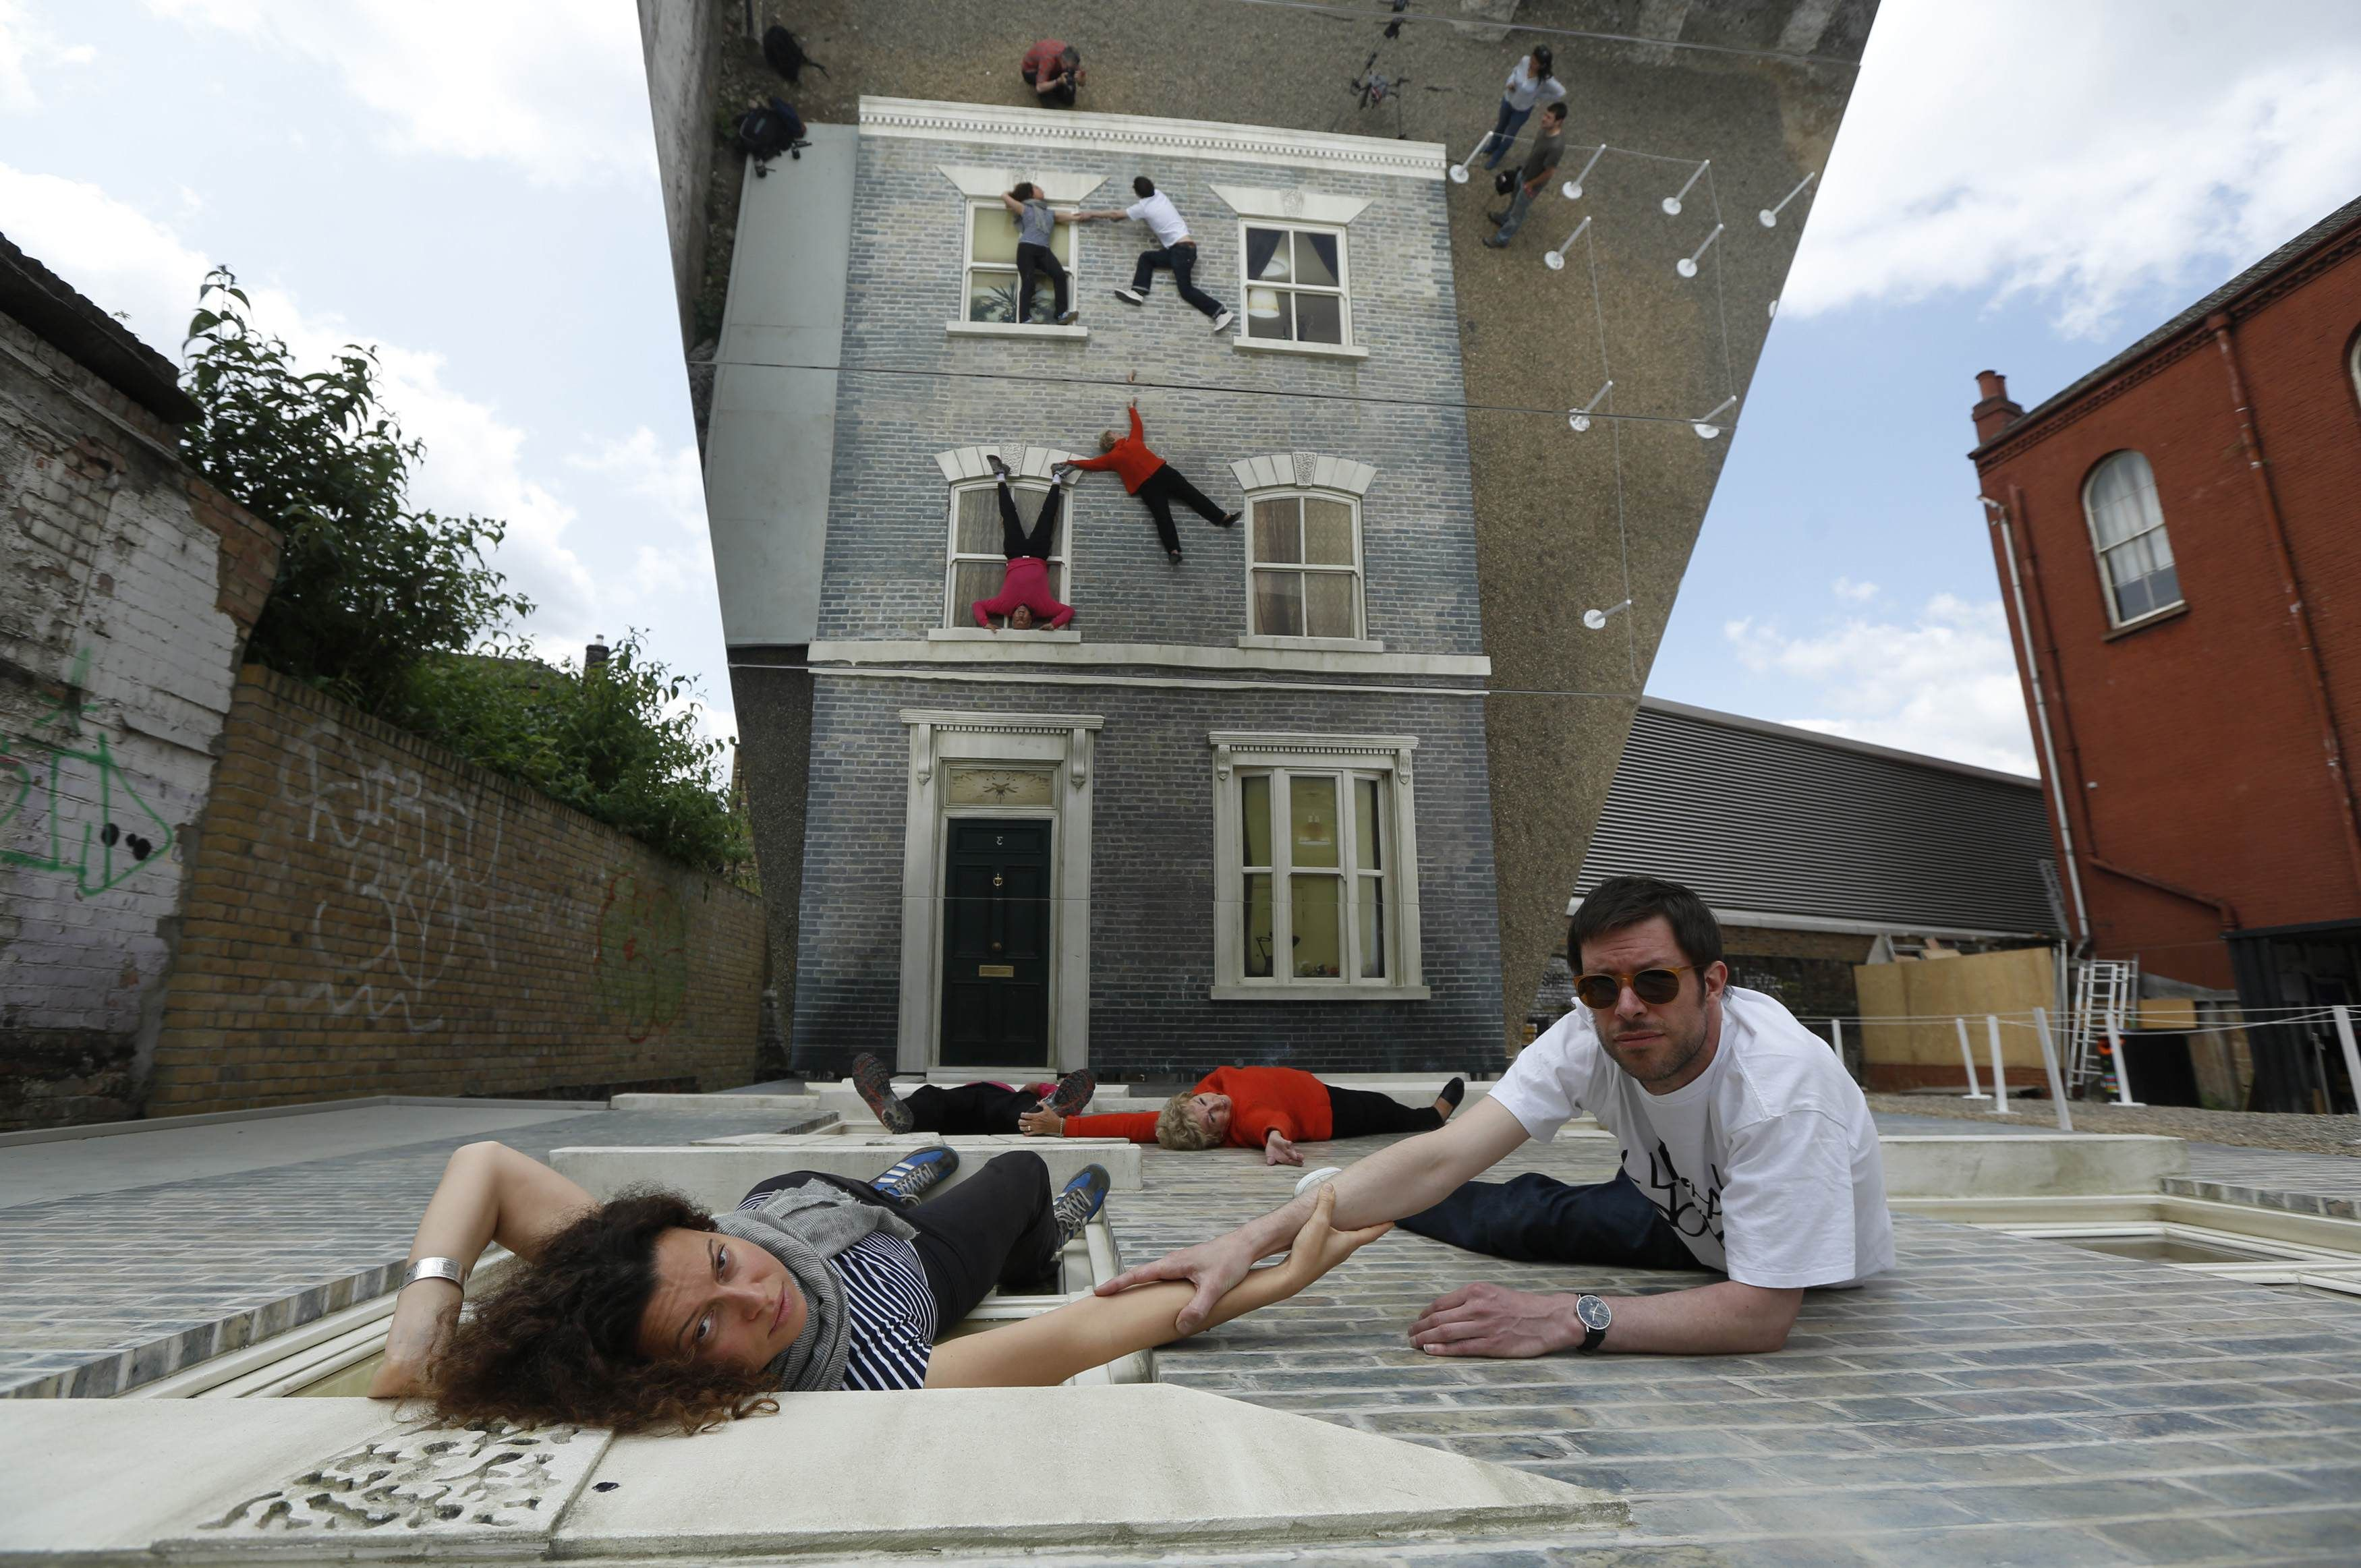 Mirror house art pops up in east London | Art installation, House ...